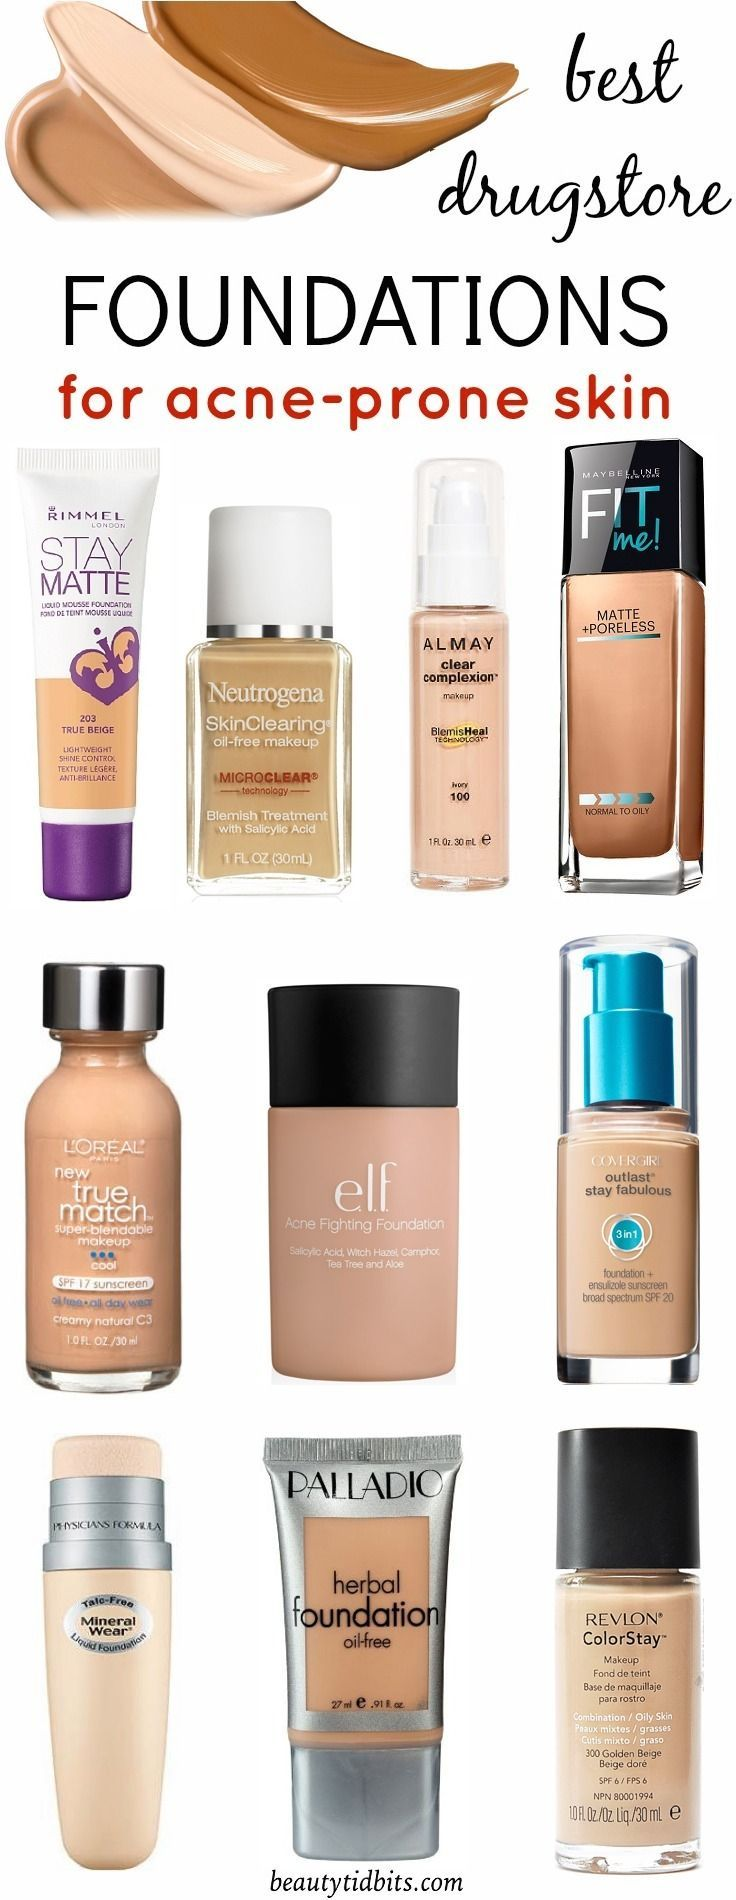 Best Drugstore Foundations For Acne-Prone Skin (Mostly Under $10)